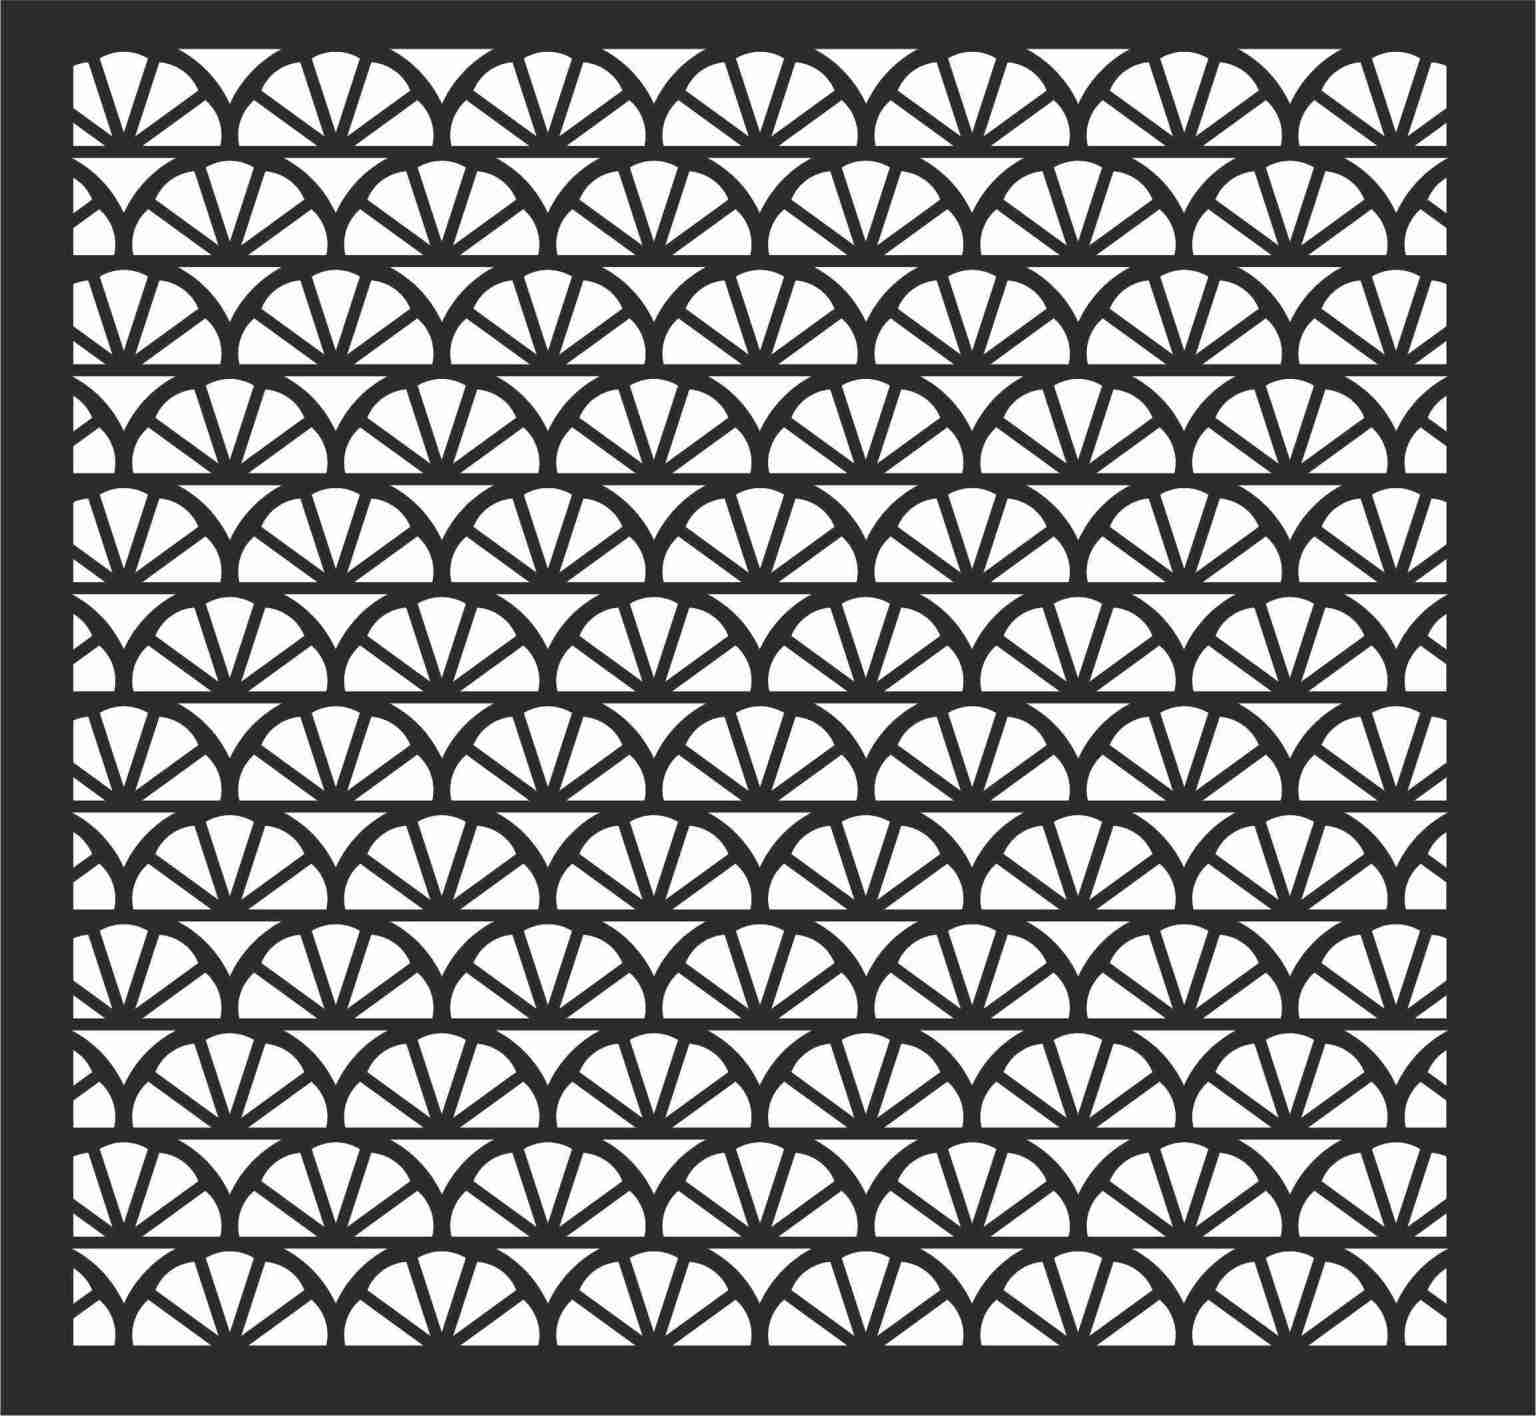 Decorative Screen Patterns For Laser Cutting 117 Free DXF File